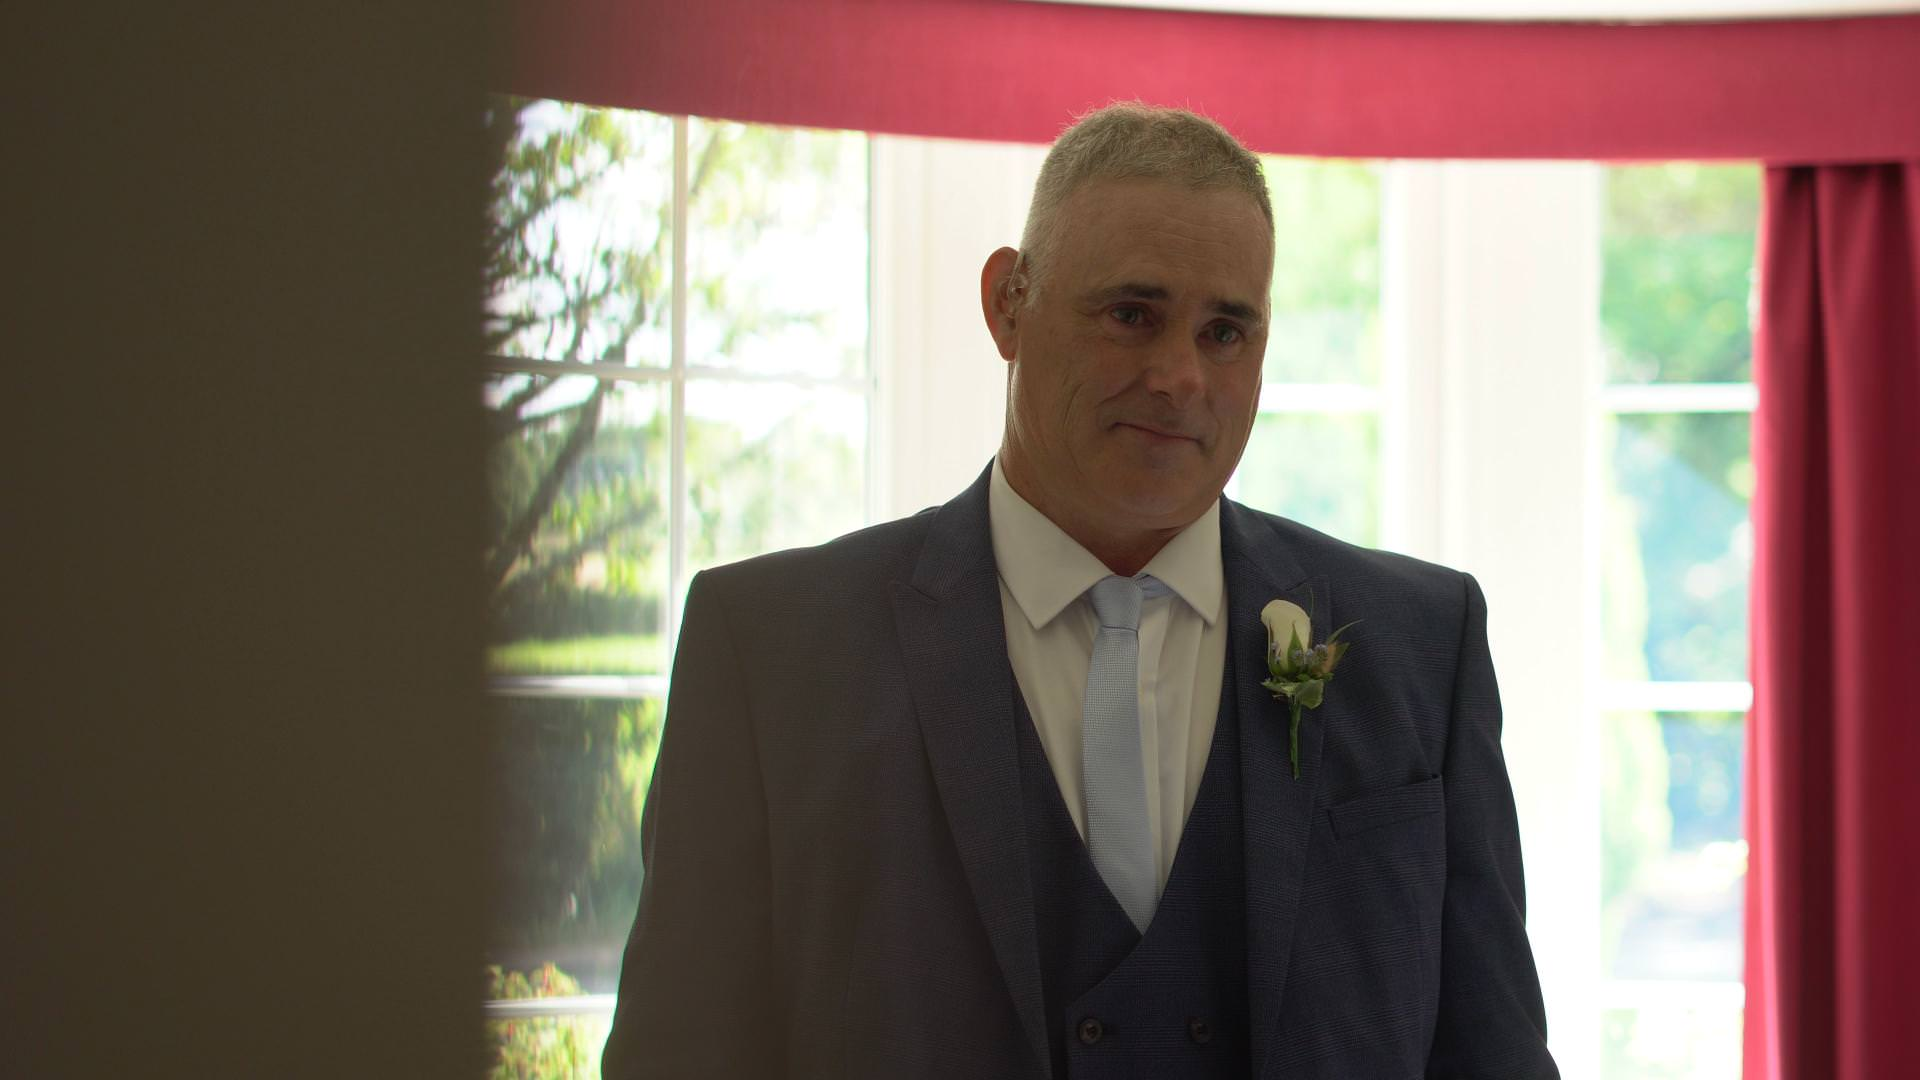 a video still of an emotional looking father of the bride